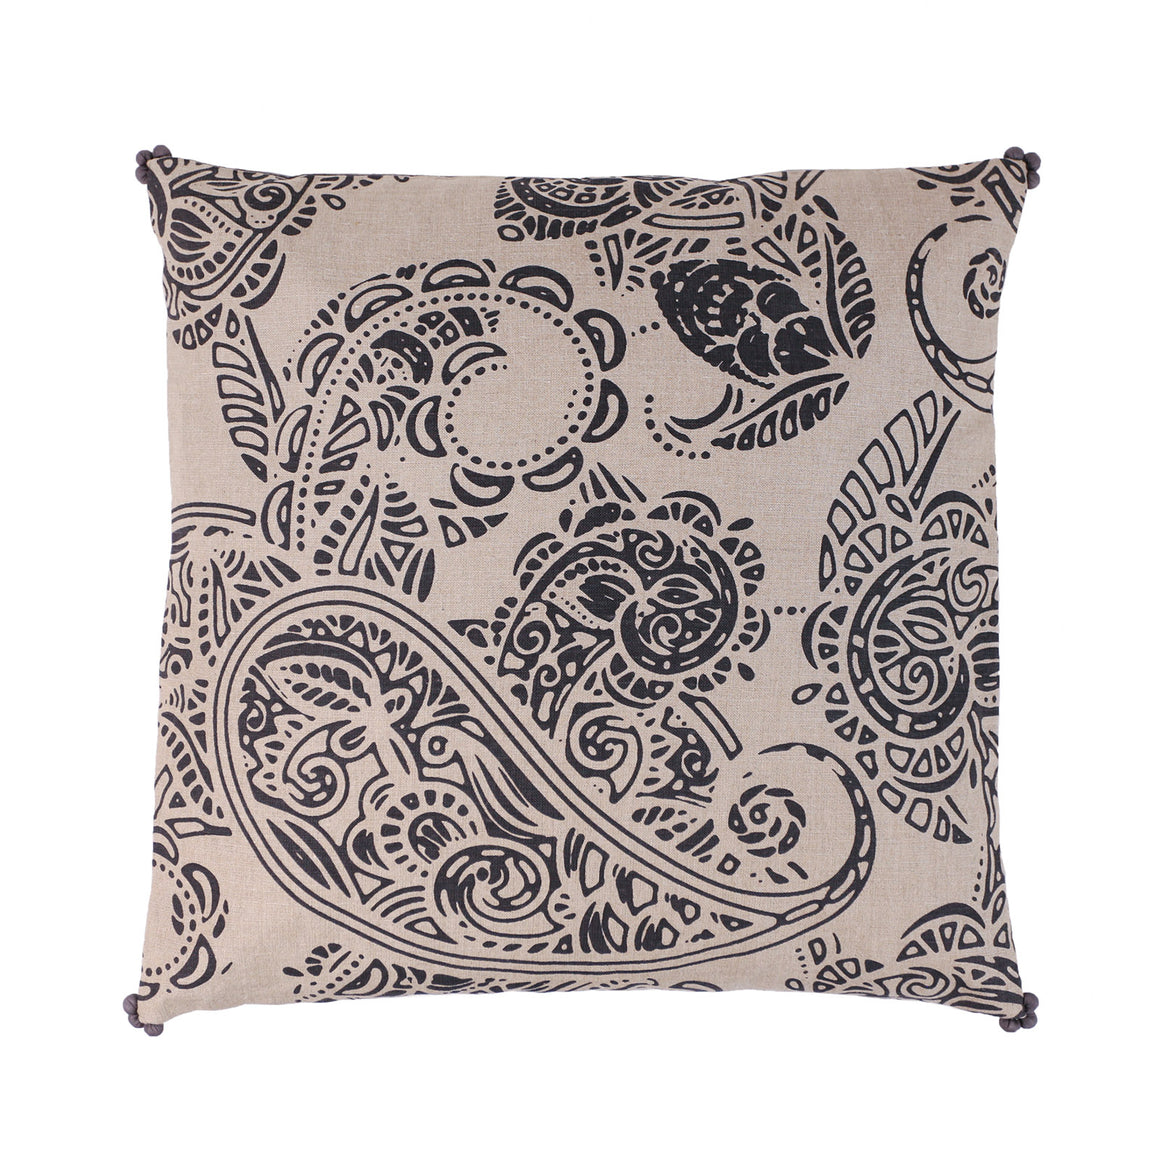 Buy one get one Free - Charcoal Print Linen Paisley